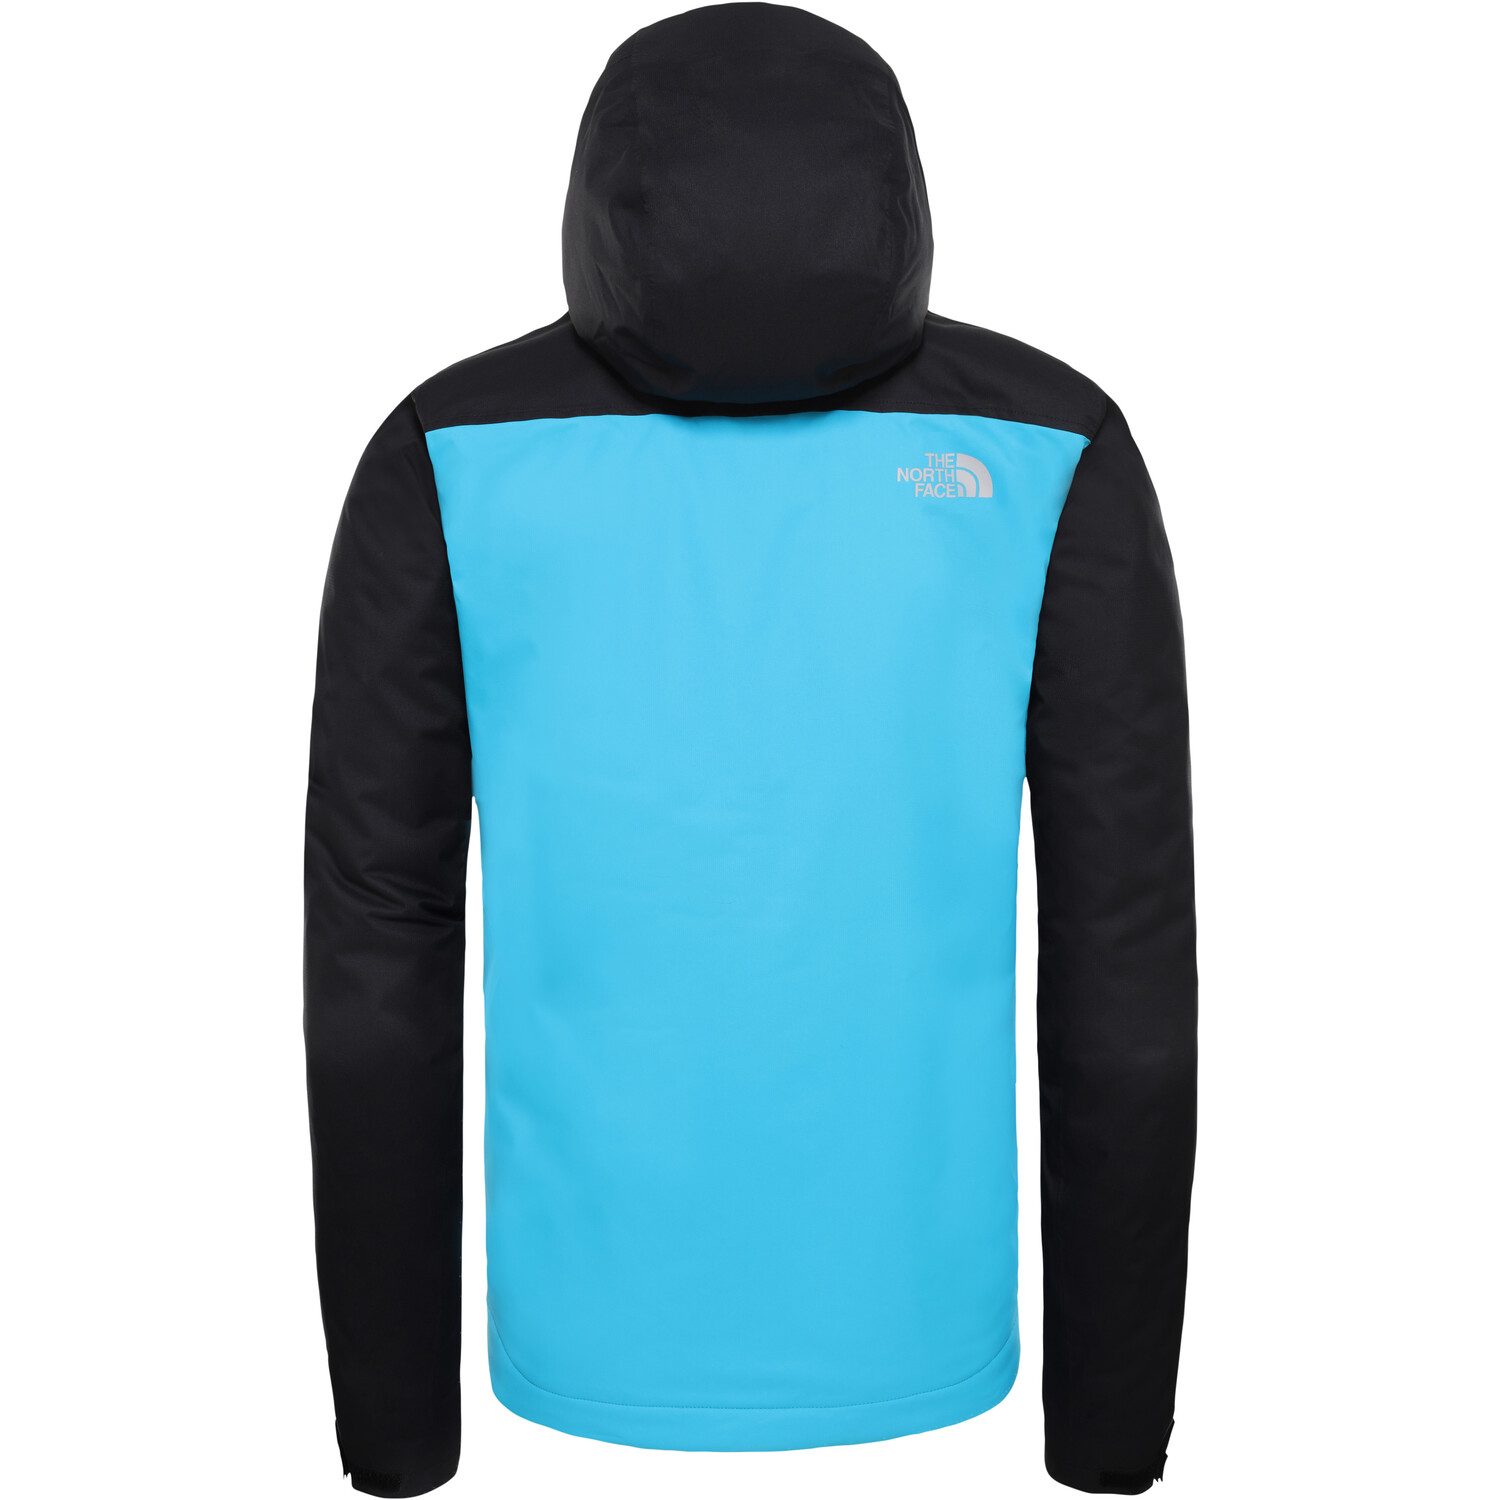 The North Face Miller Isolierende Jacke Herren tnf black/acoustic blue